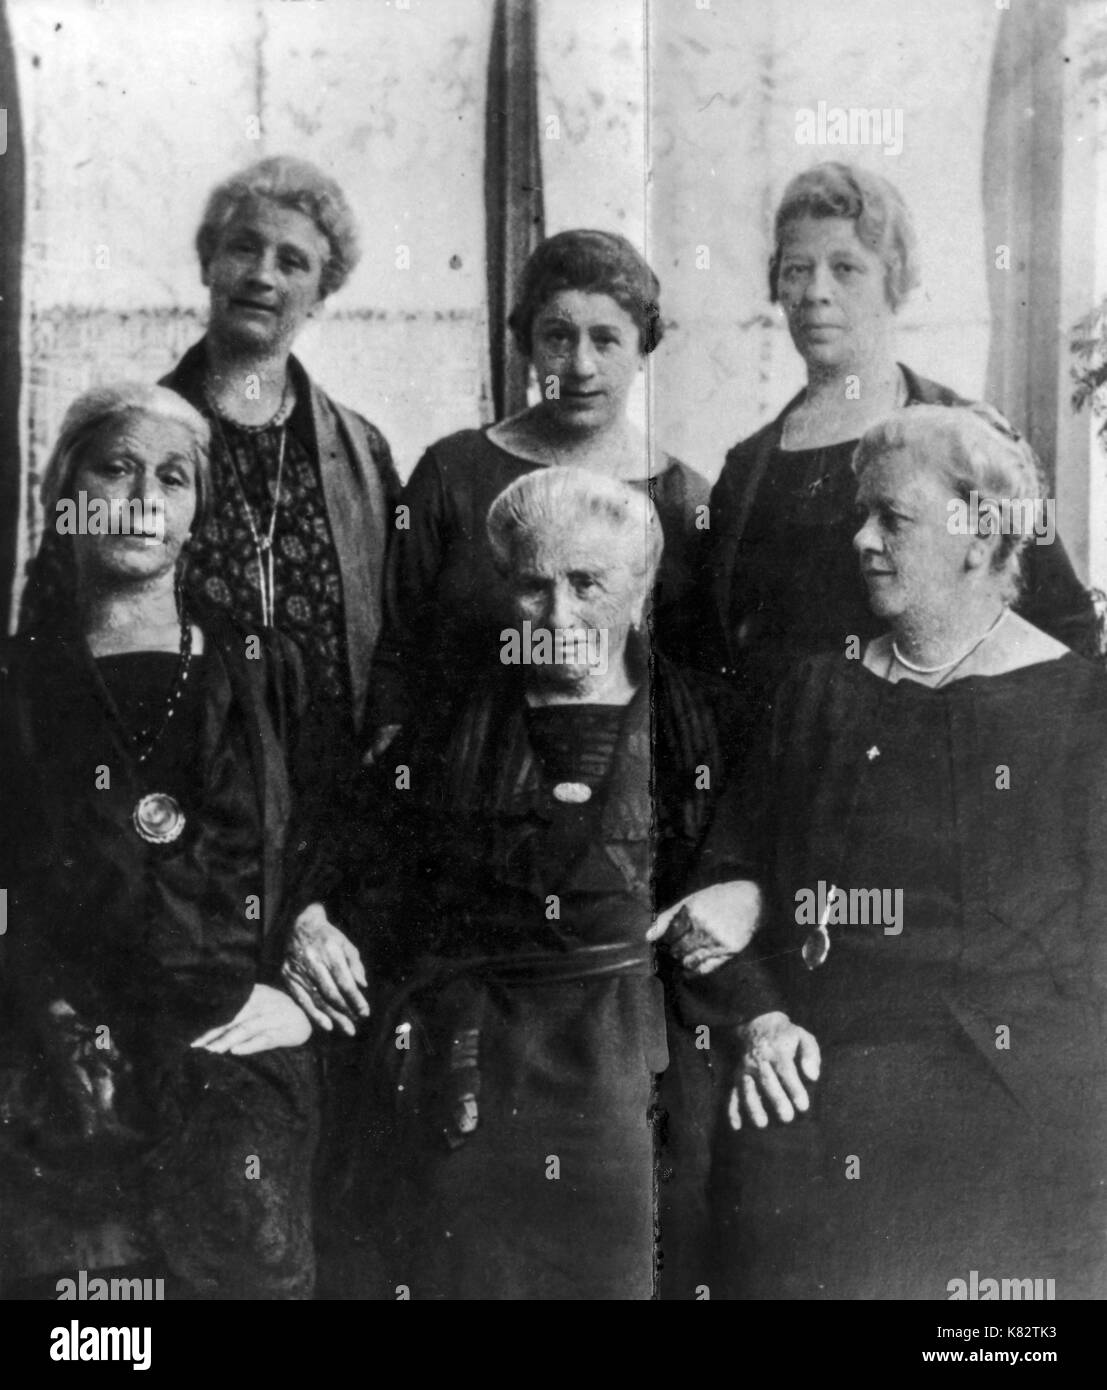 amalia freud, sigmund freud's mother with daughters, 1925 - Stock Image